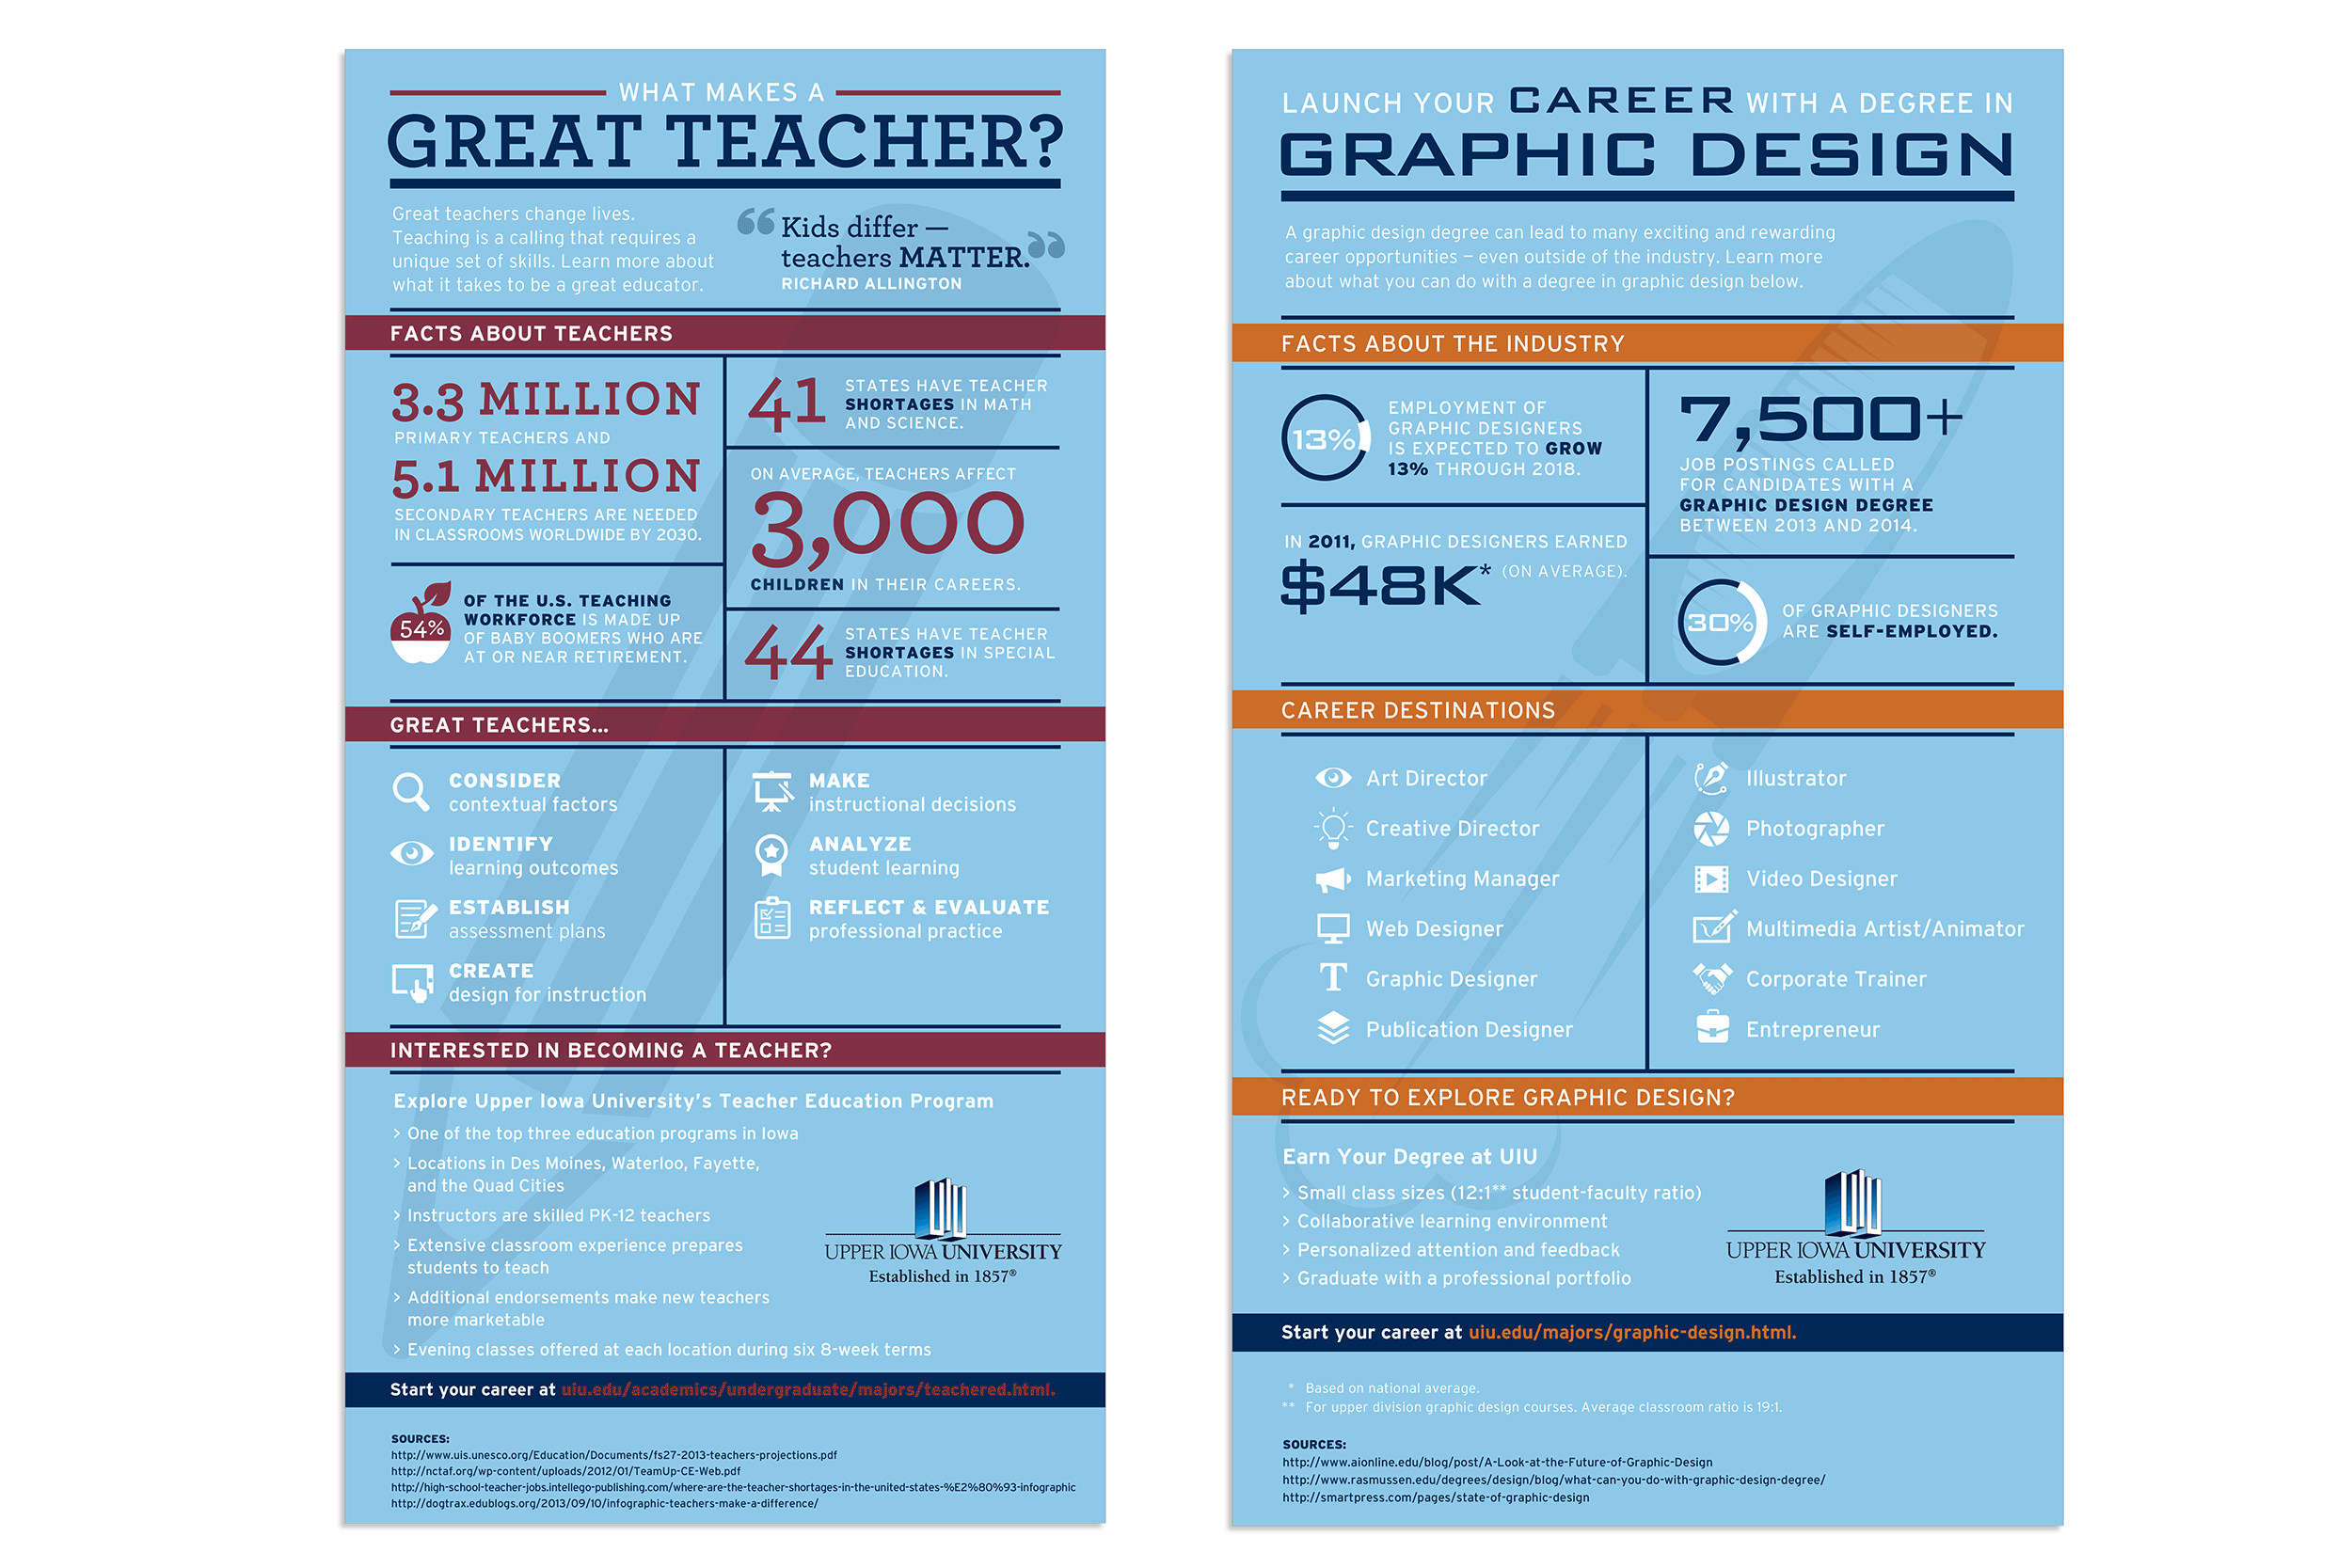 Infographic designs by Virtual Apiary for Upper Iowa University